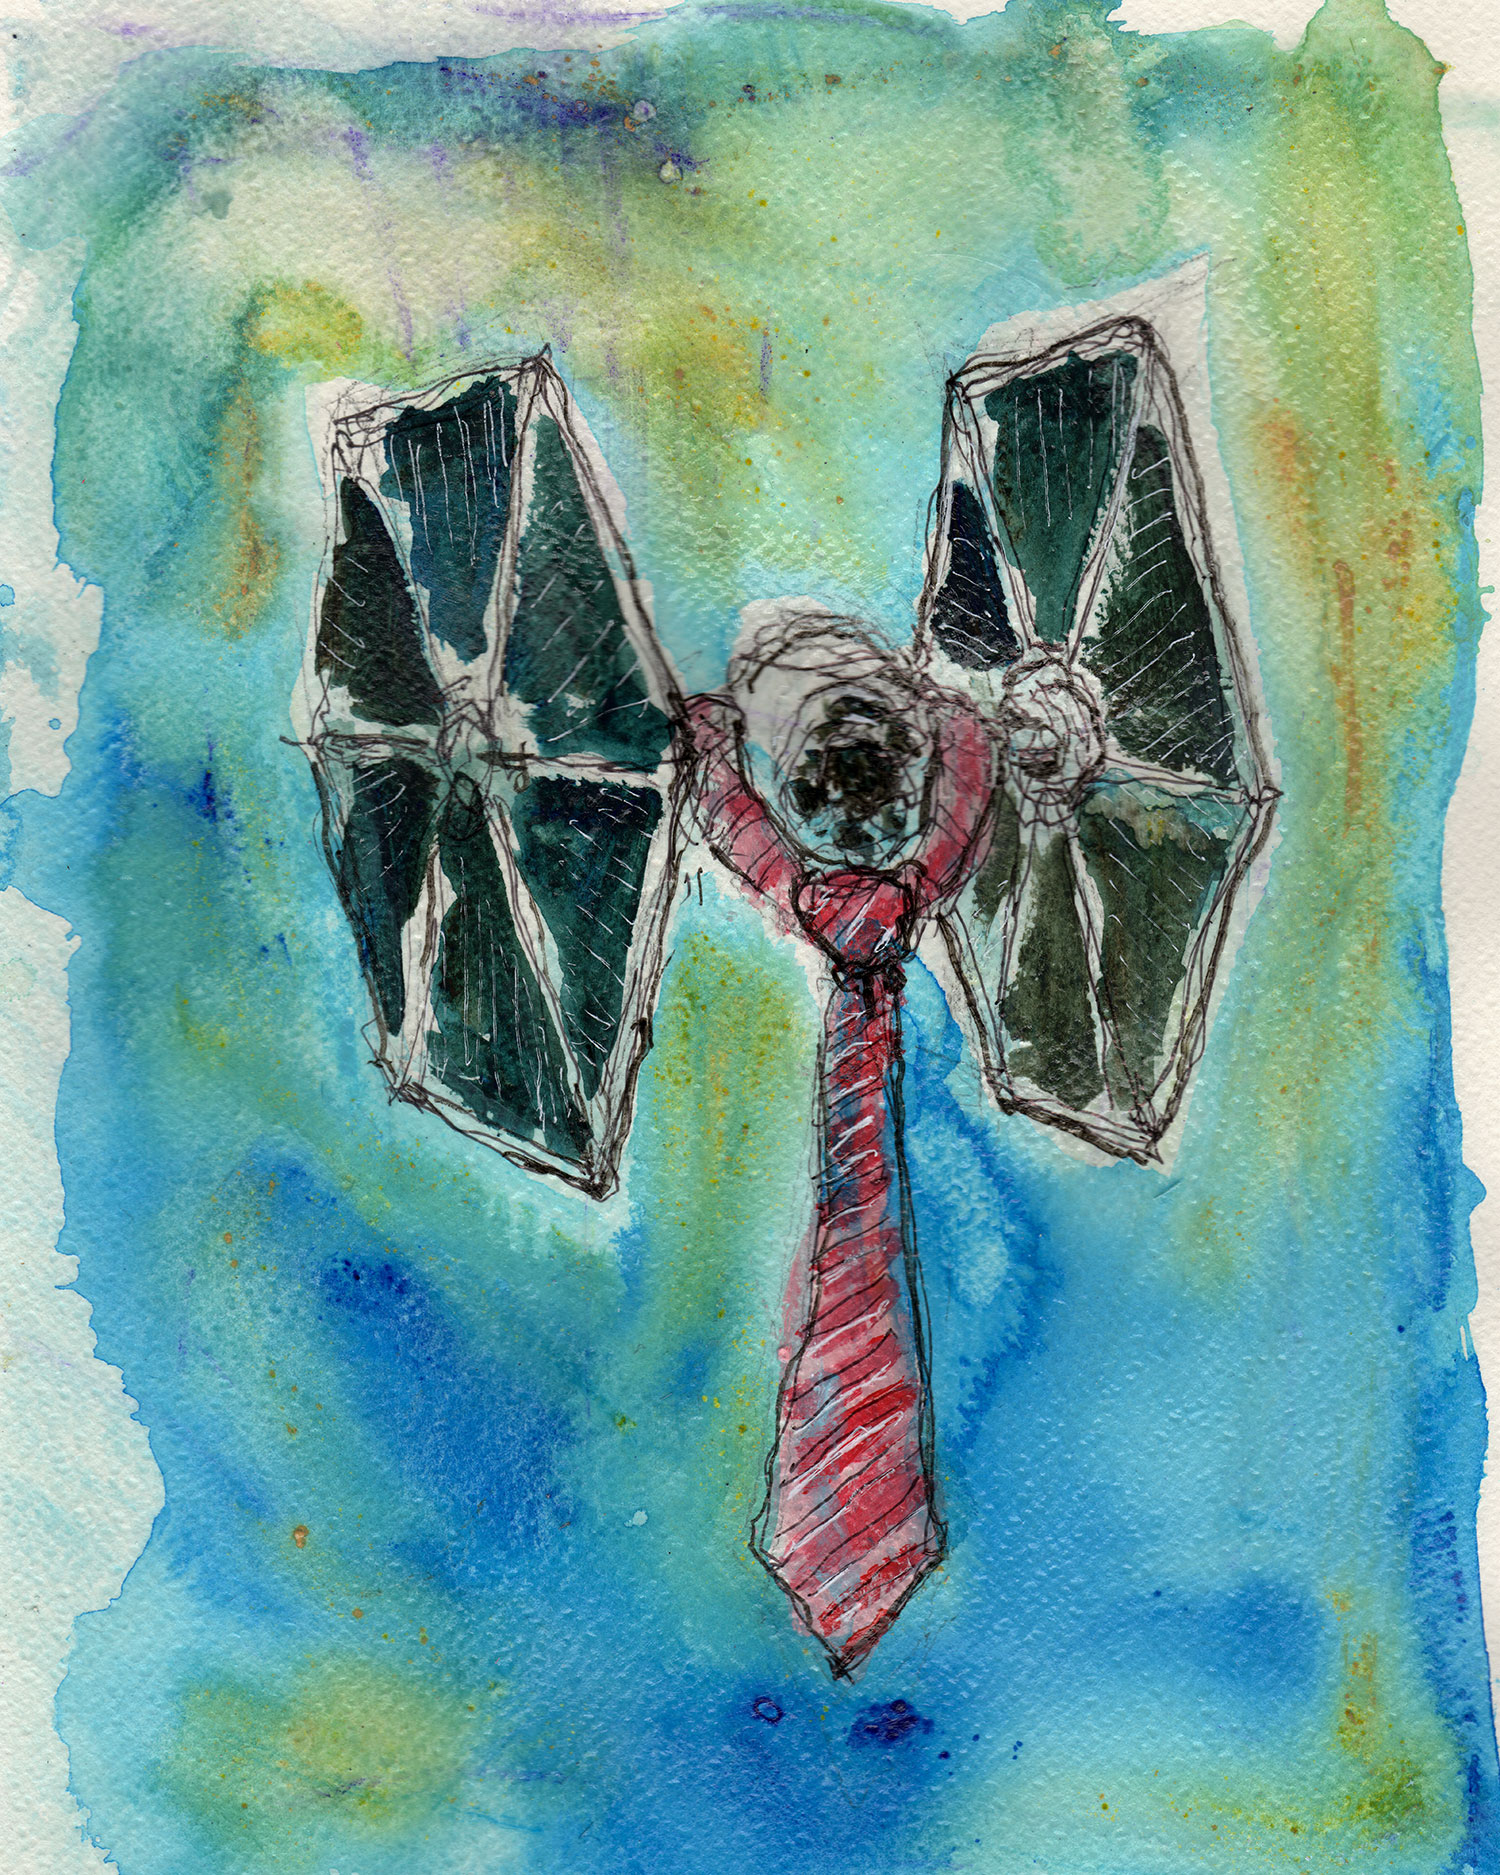 12_30_15-Tie_fighter-ss.jpg